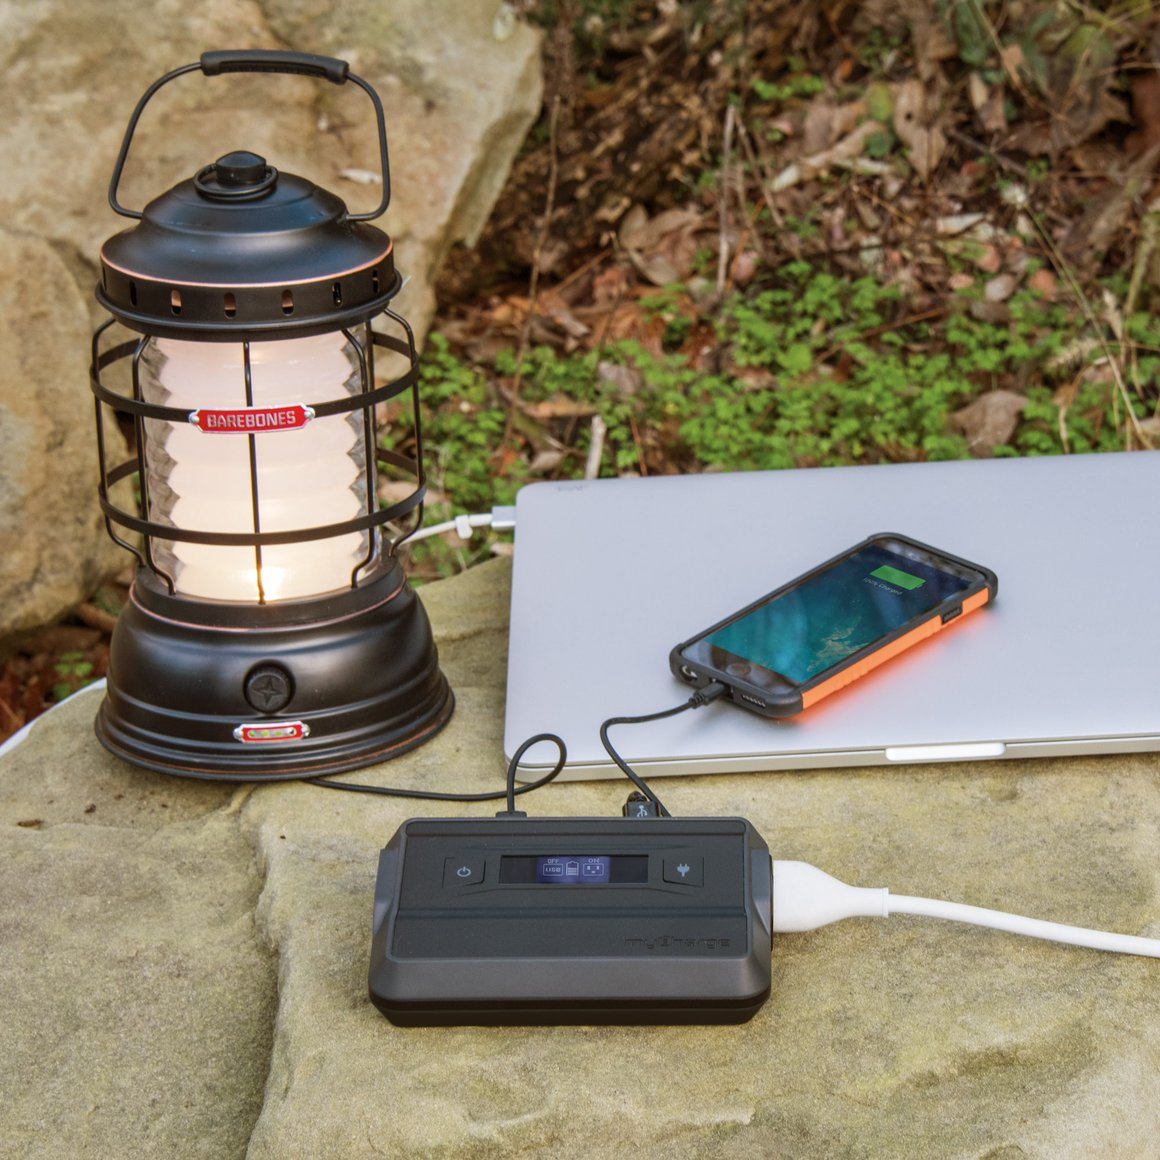 The best additions to your hunting gear is an addition that will keep all your gear charged.